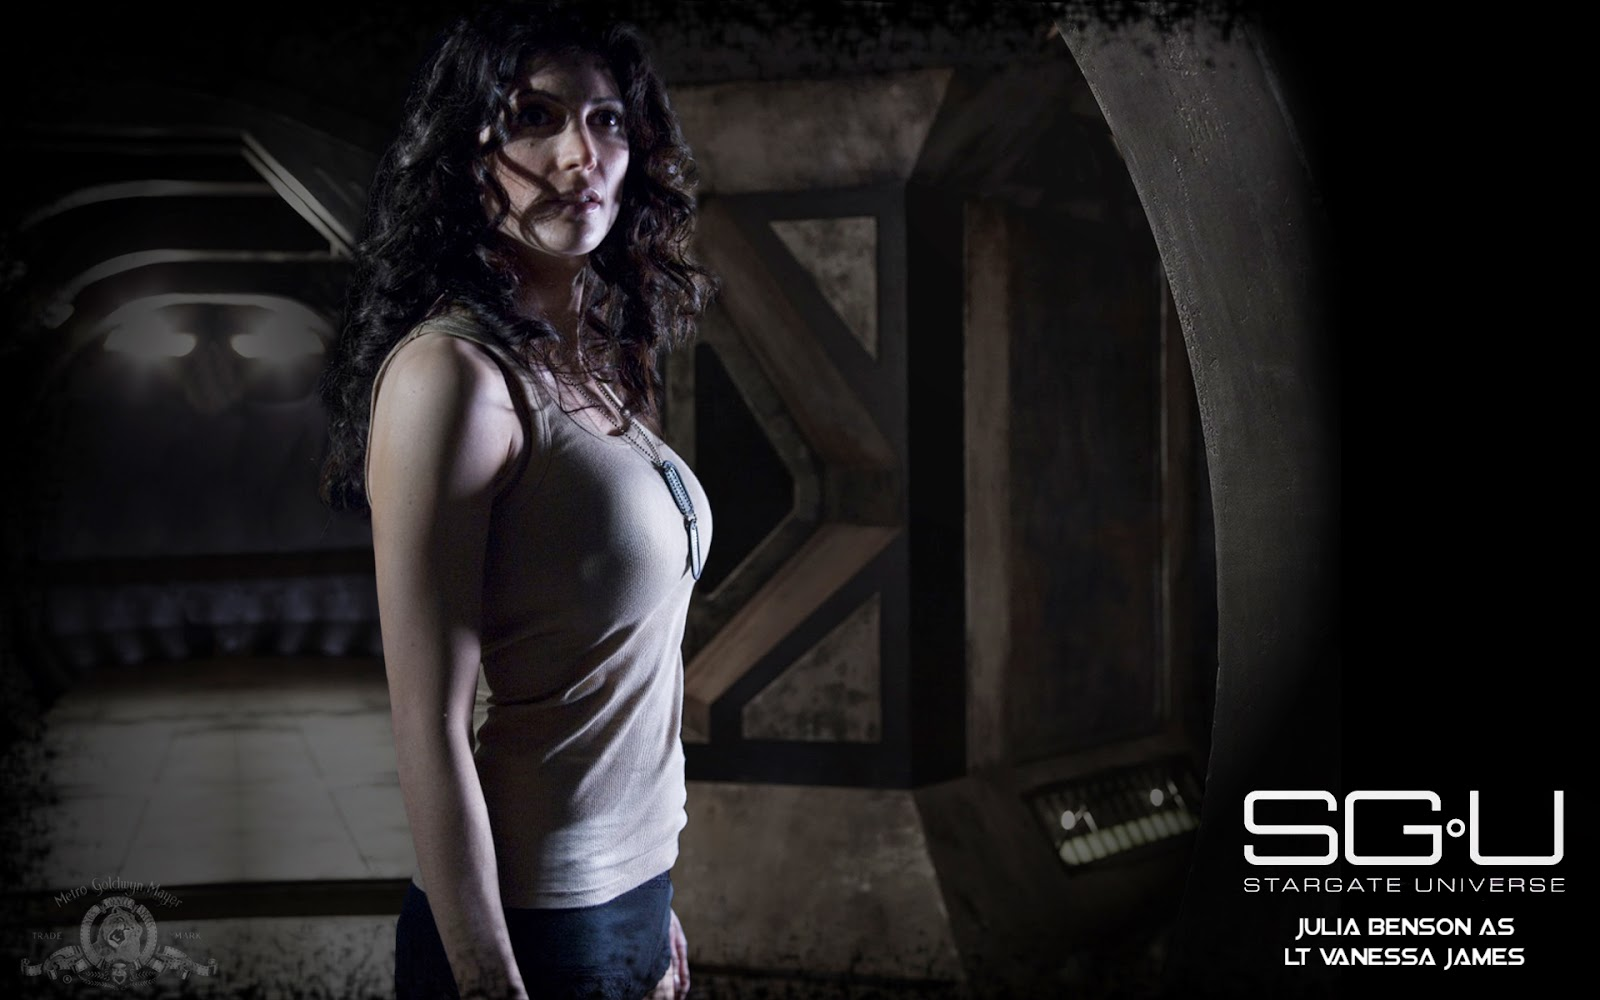 julia benson in stargate universe wide